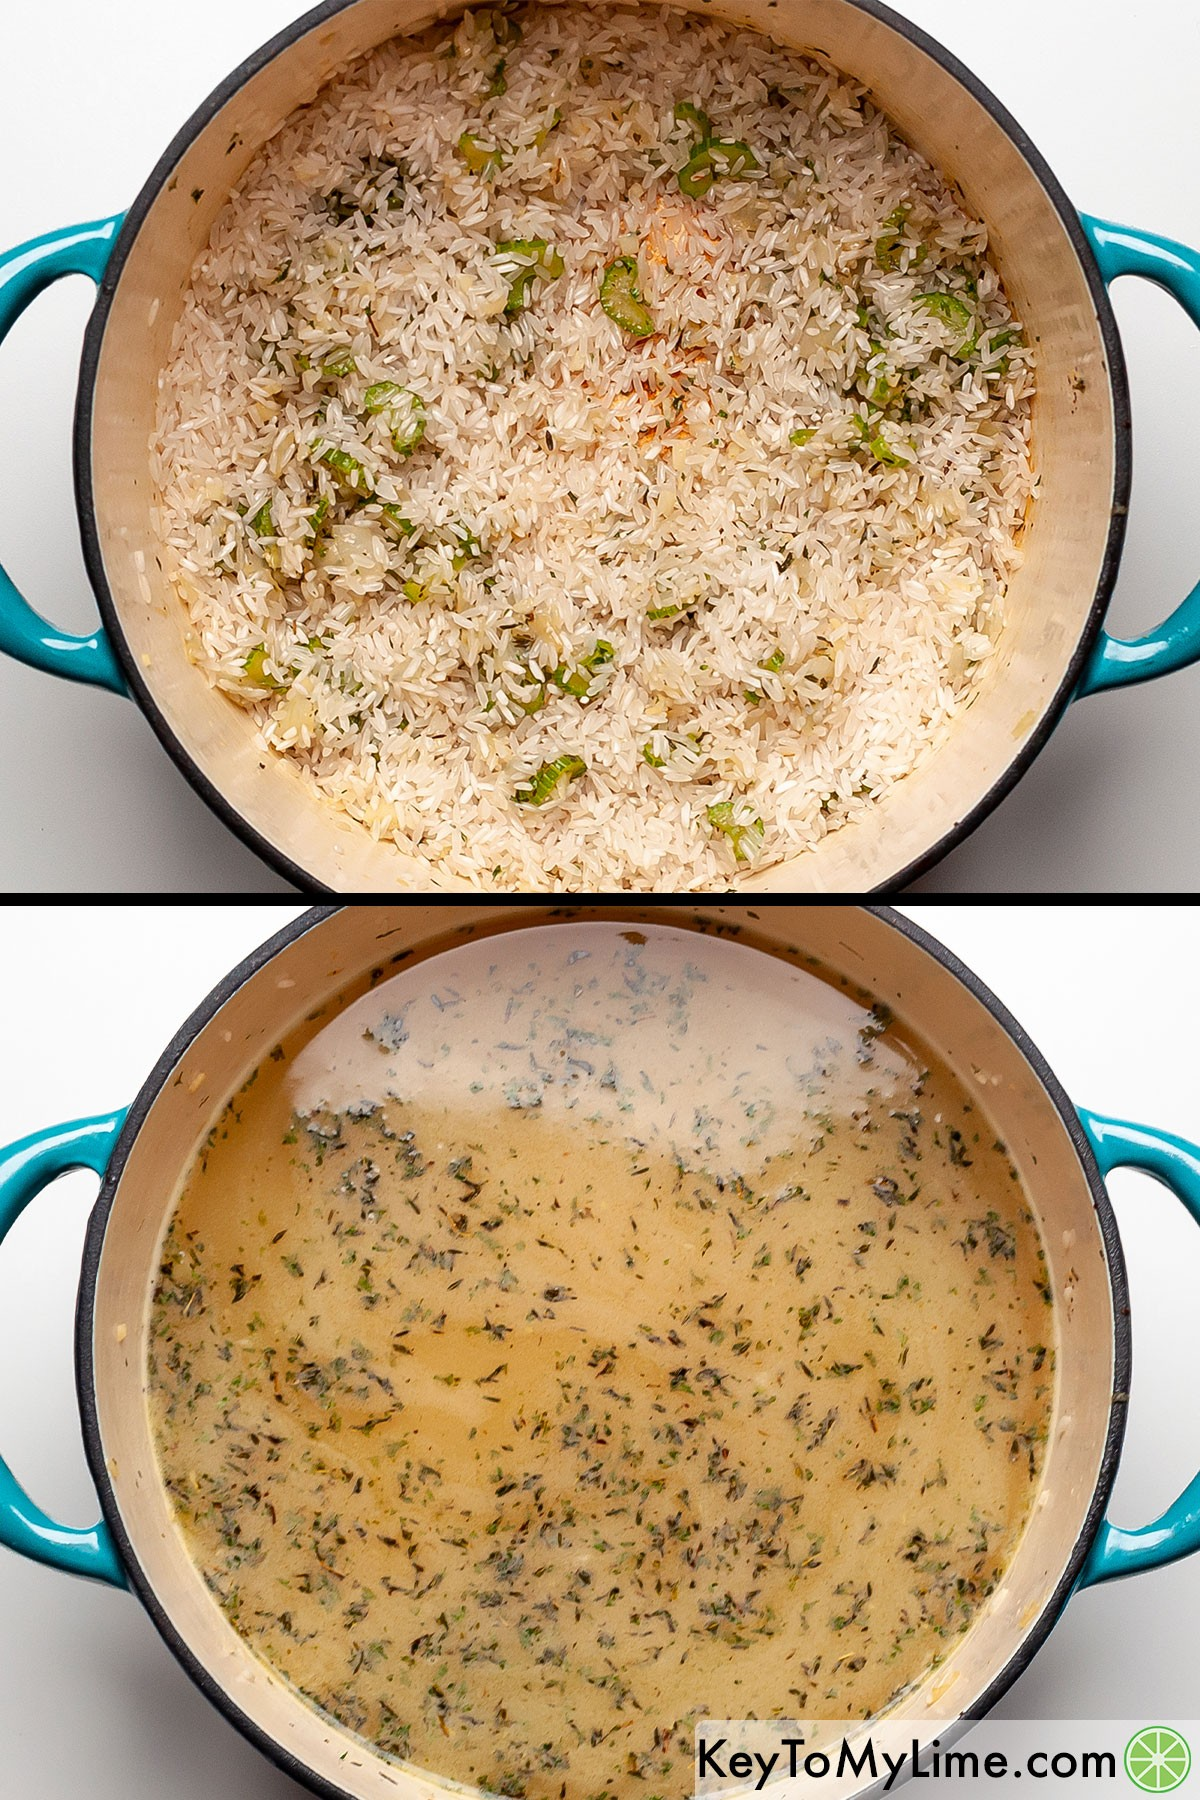 Toasted rice before and after adding chicken broth to it to cook.